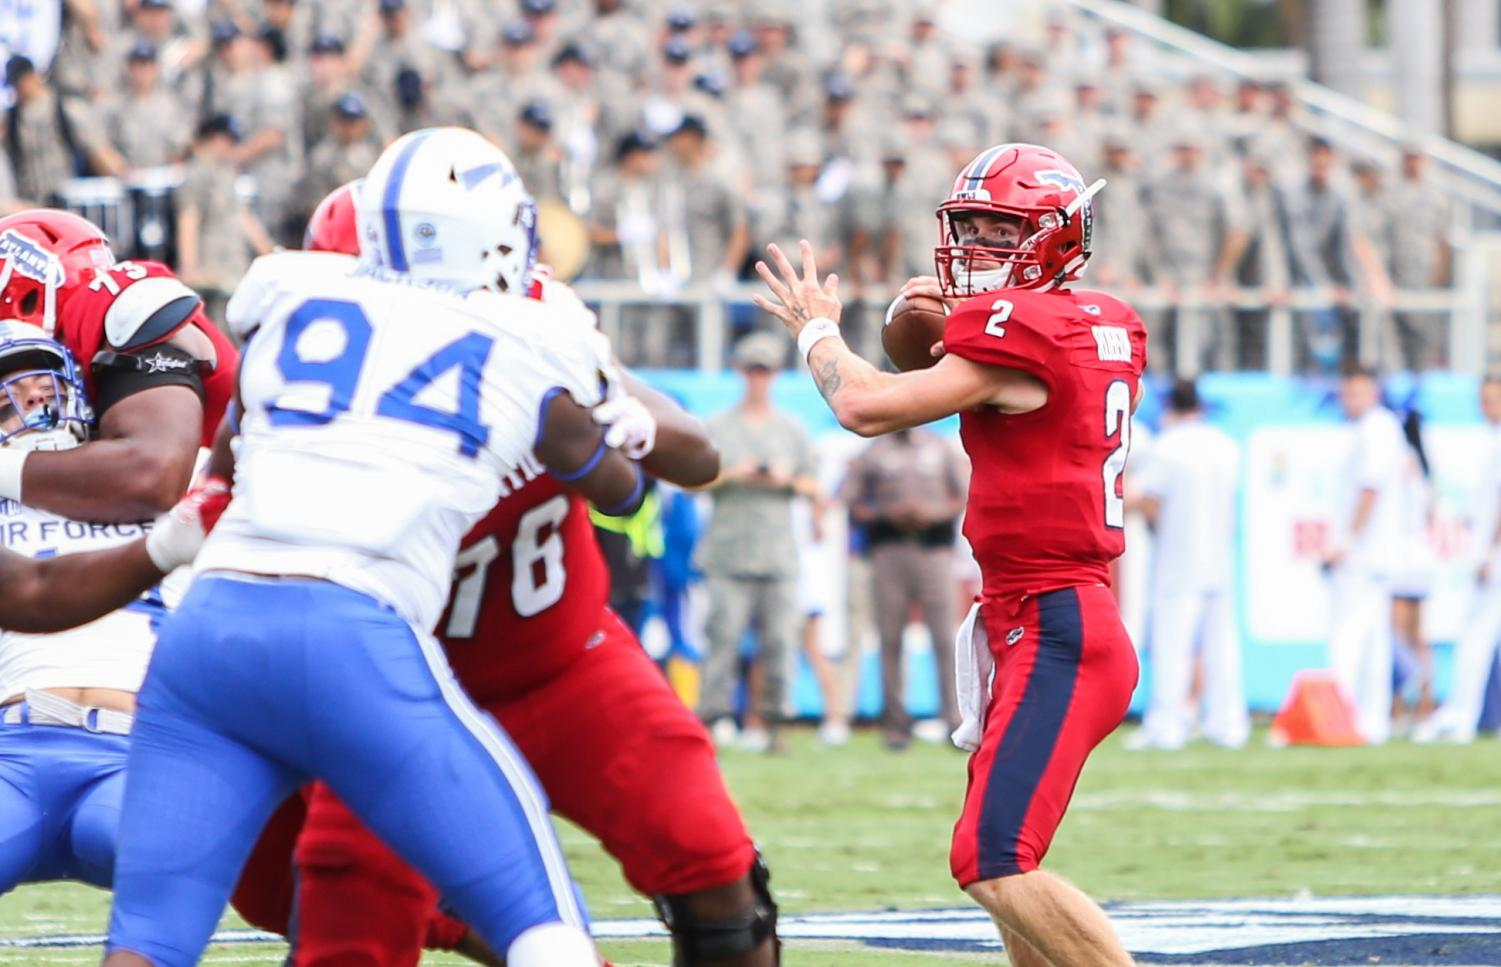 FAU shines in home opener against Air Force     University Press FAU redshirt freshman quarterback Chris Robison  2  decides where to throw  the football before